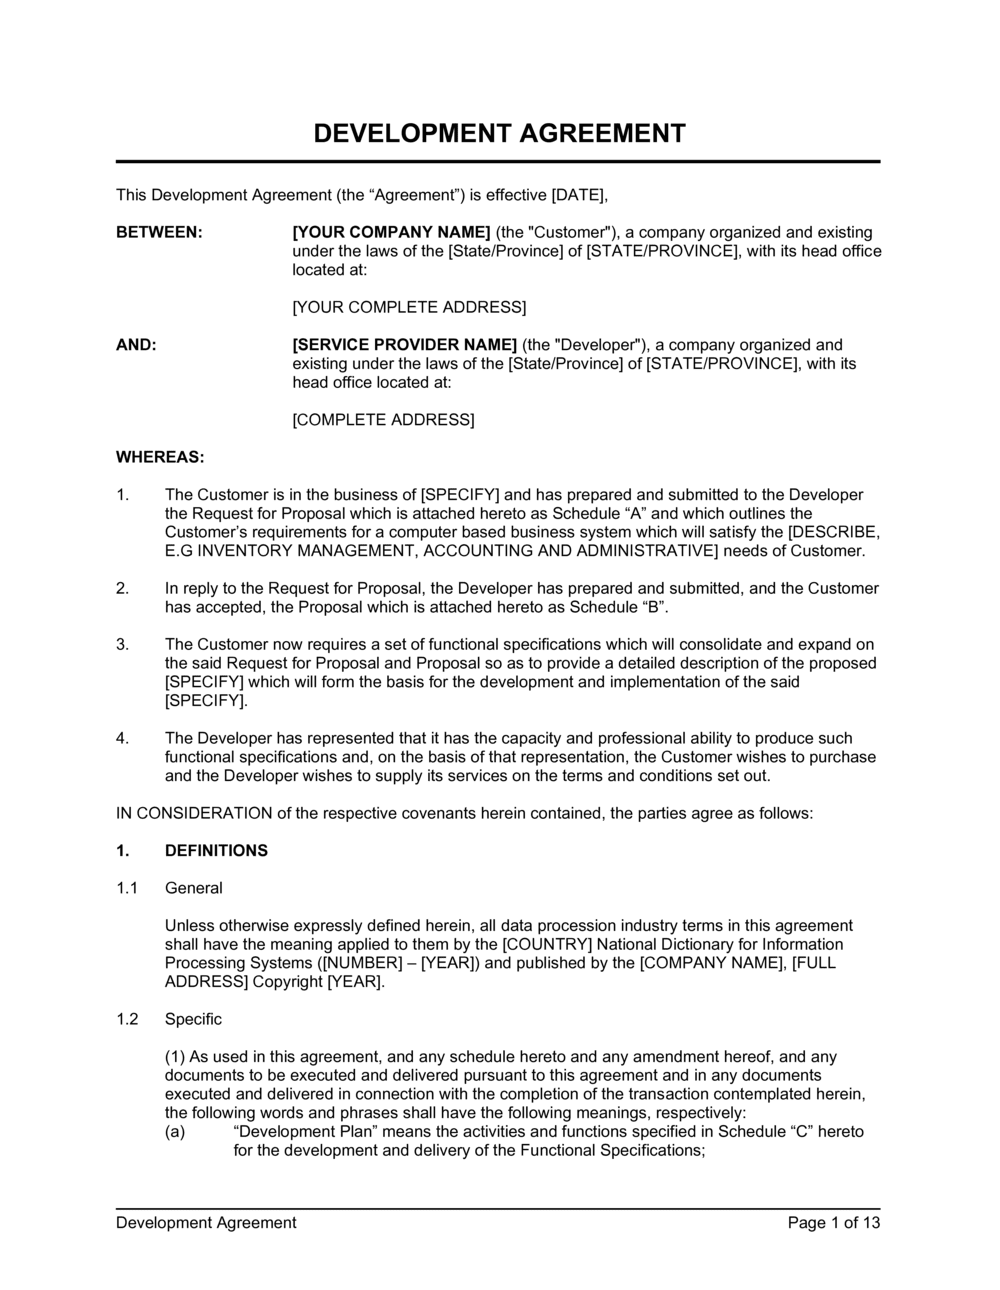 Business-in-a-Box's Development Agreement General Template